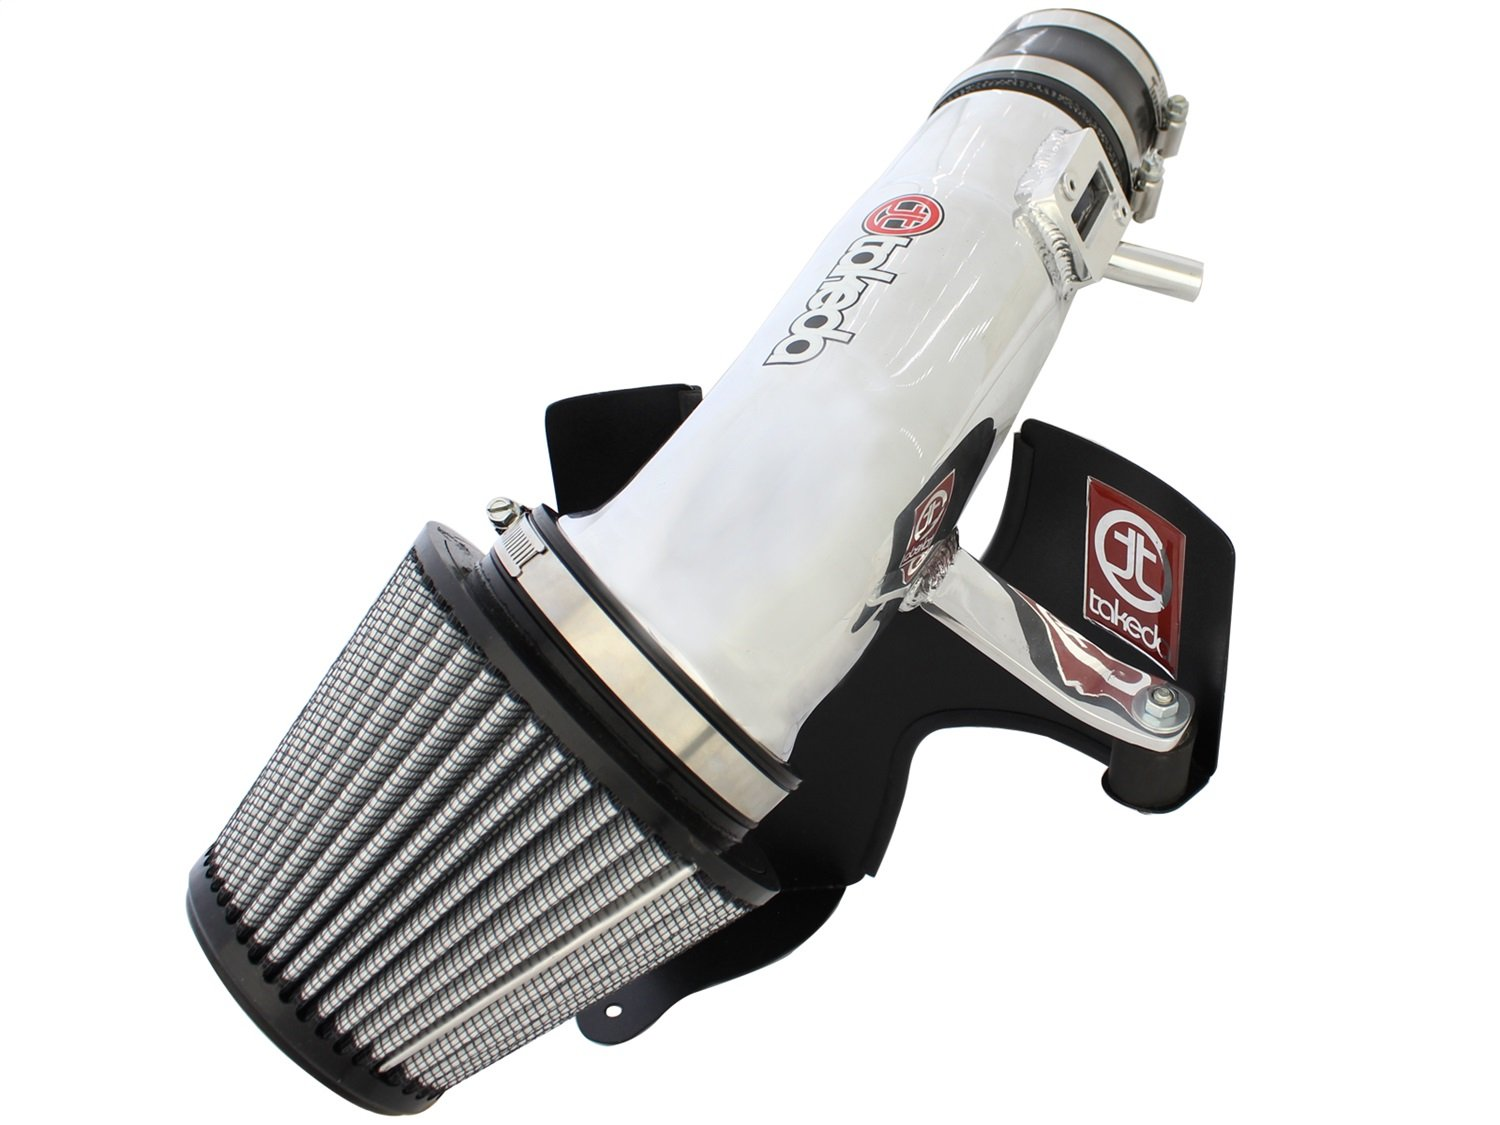 aFe TR-1021P-D Takeda Stage-2 Cold Air Intake System for Honda Accord by aFe Power (Image #1)